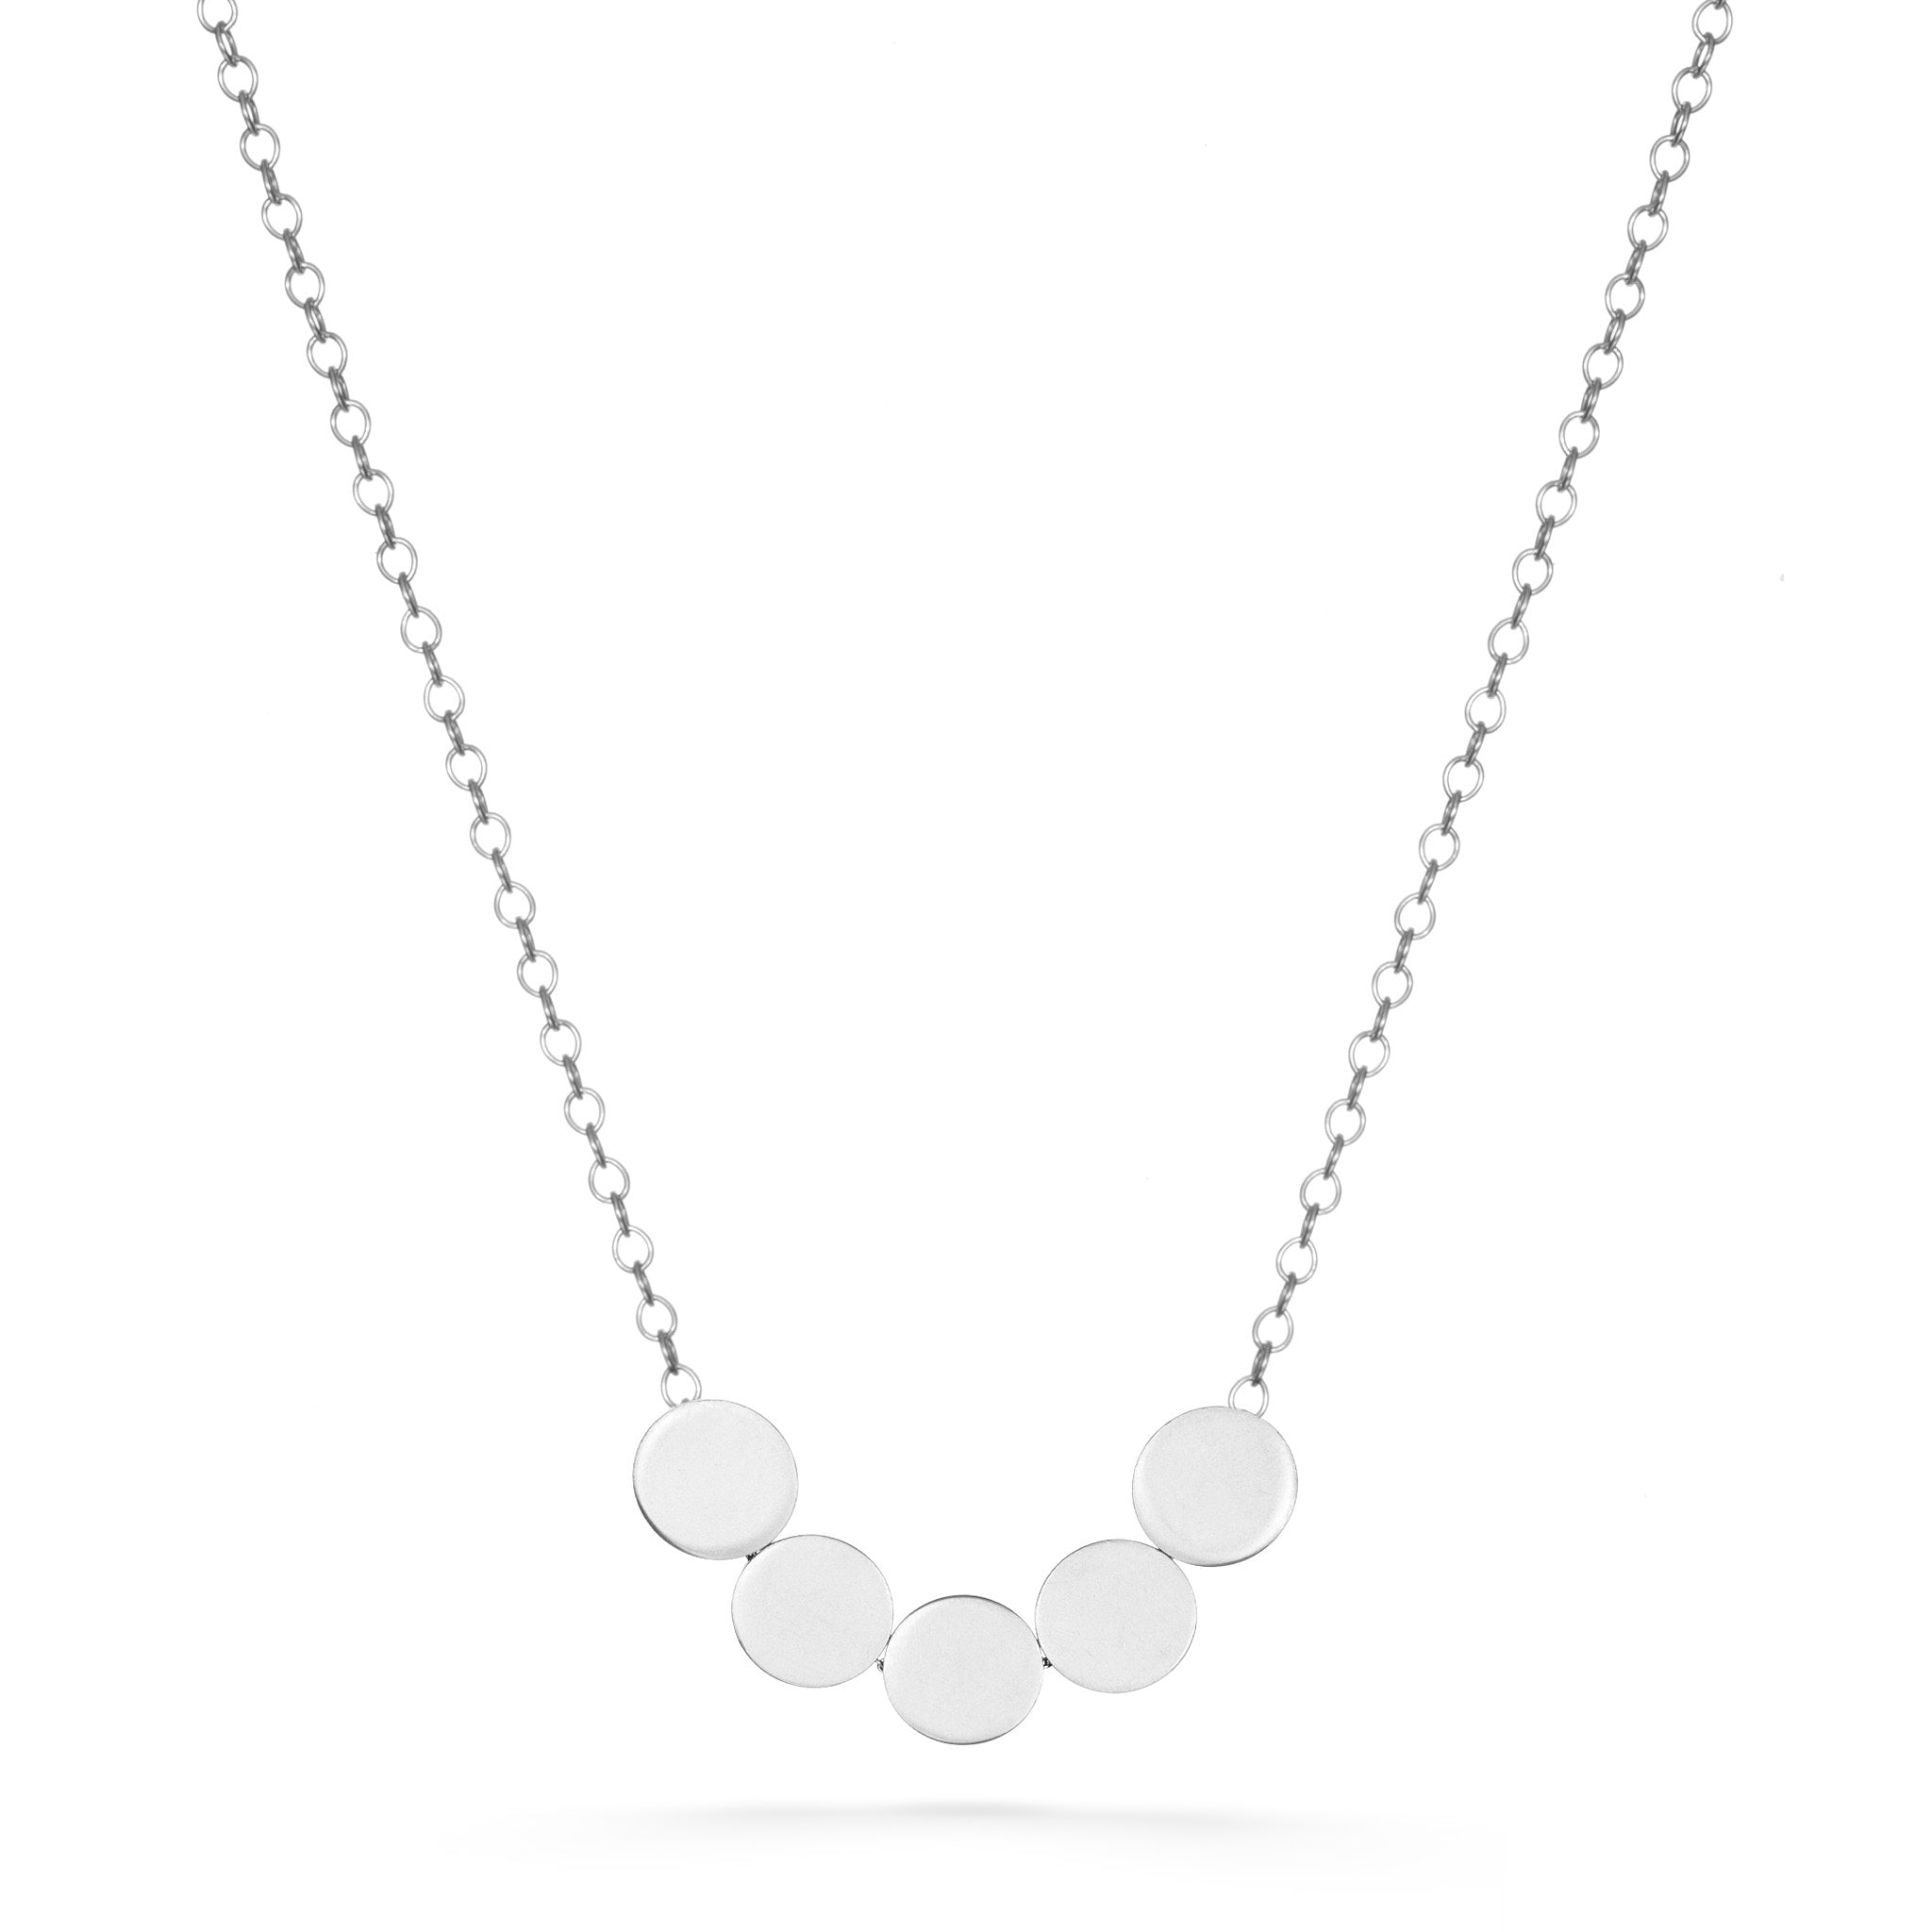 5 Dots Necklace - Silver